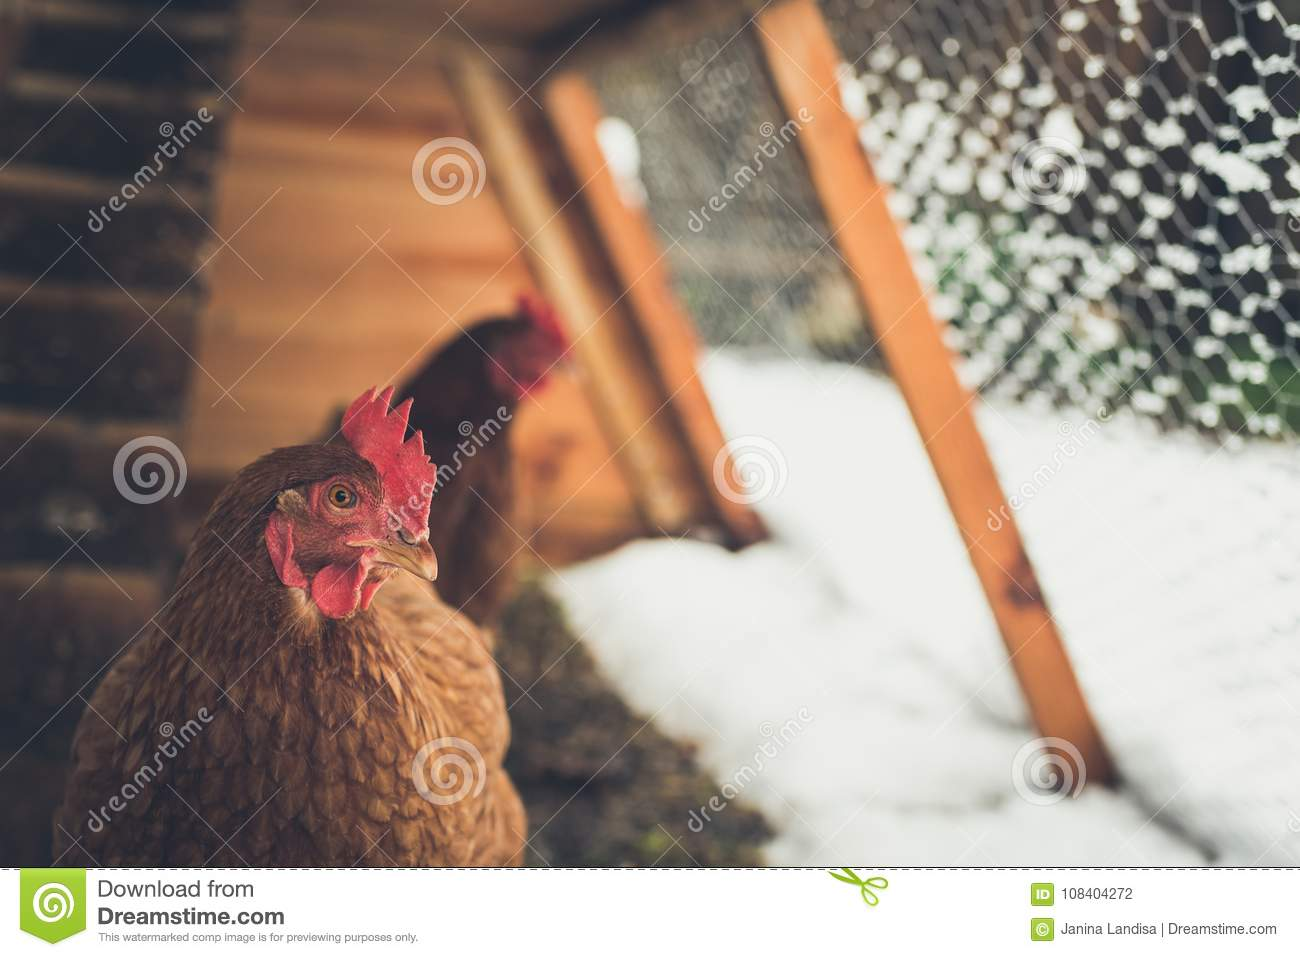 Brown chickens in home made chicken coup at the rural backyard,